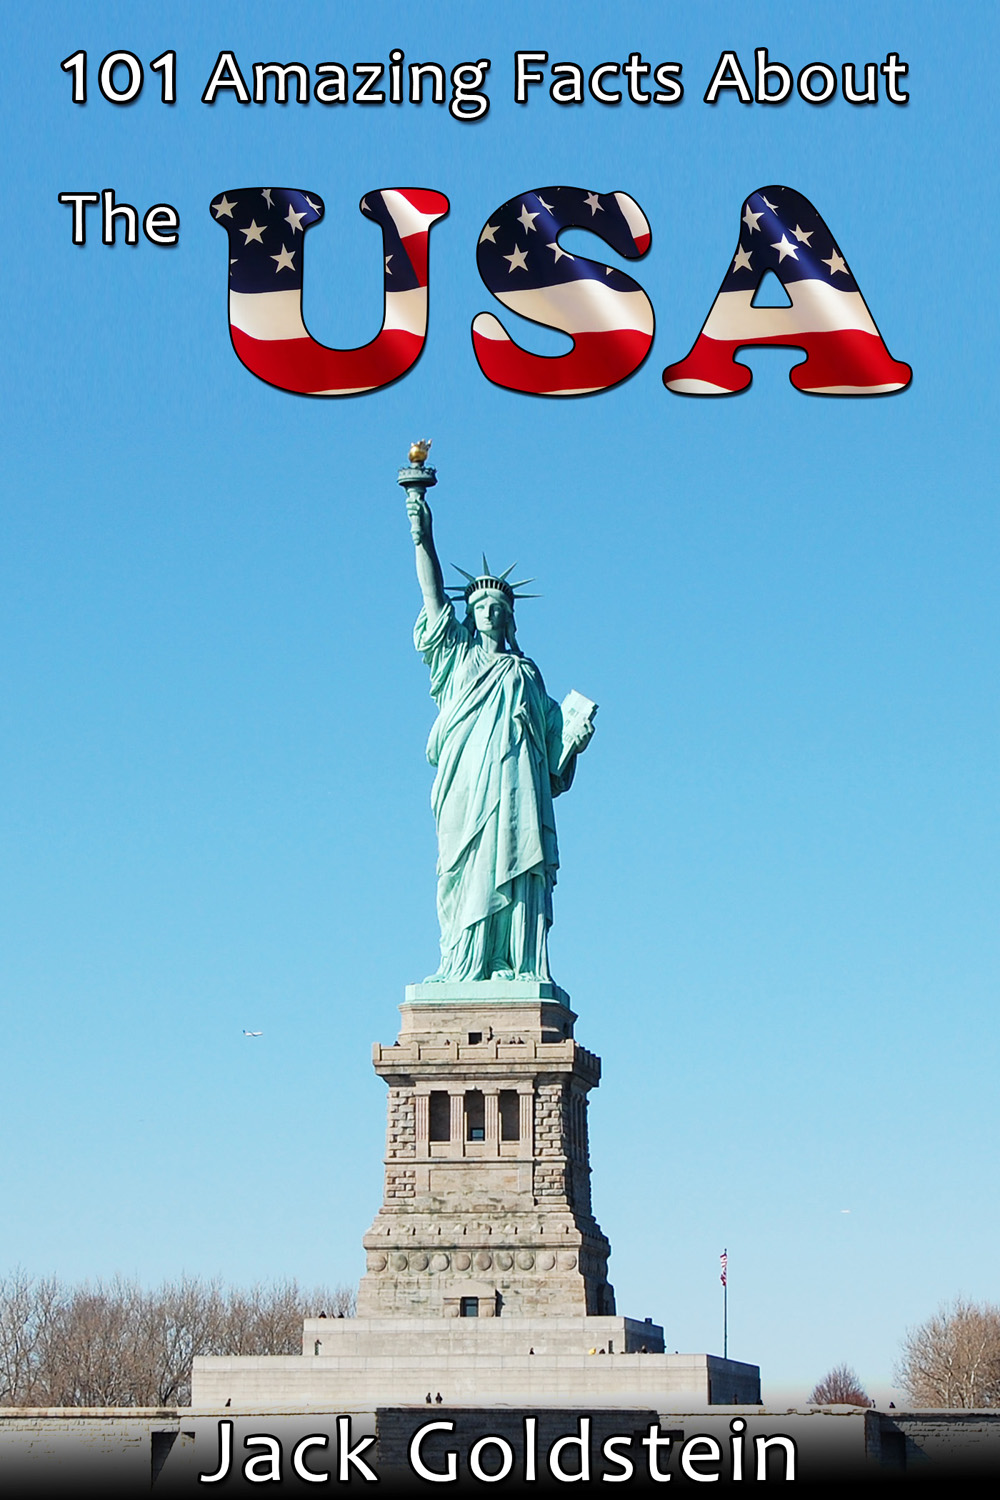 101 Amazing Facts About The USA